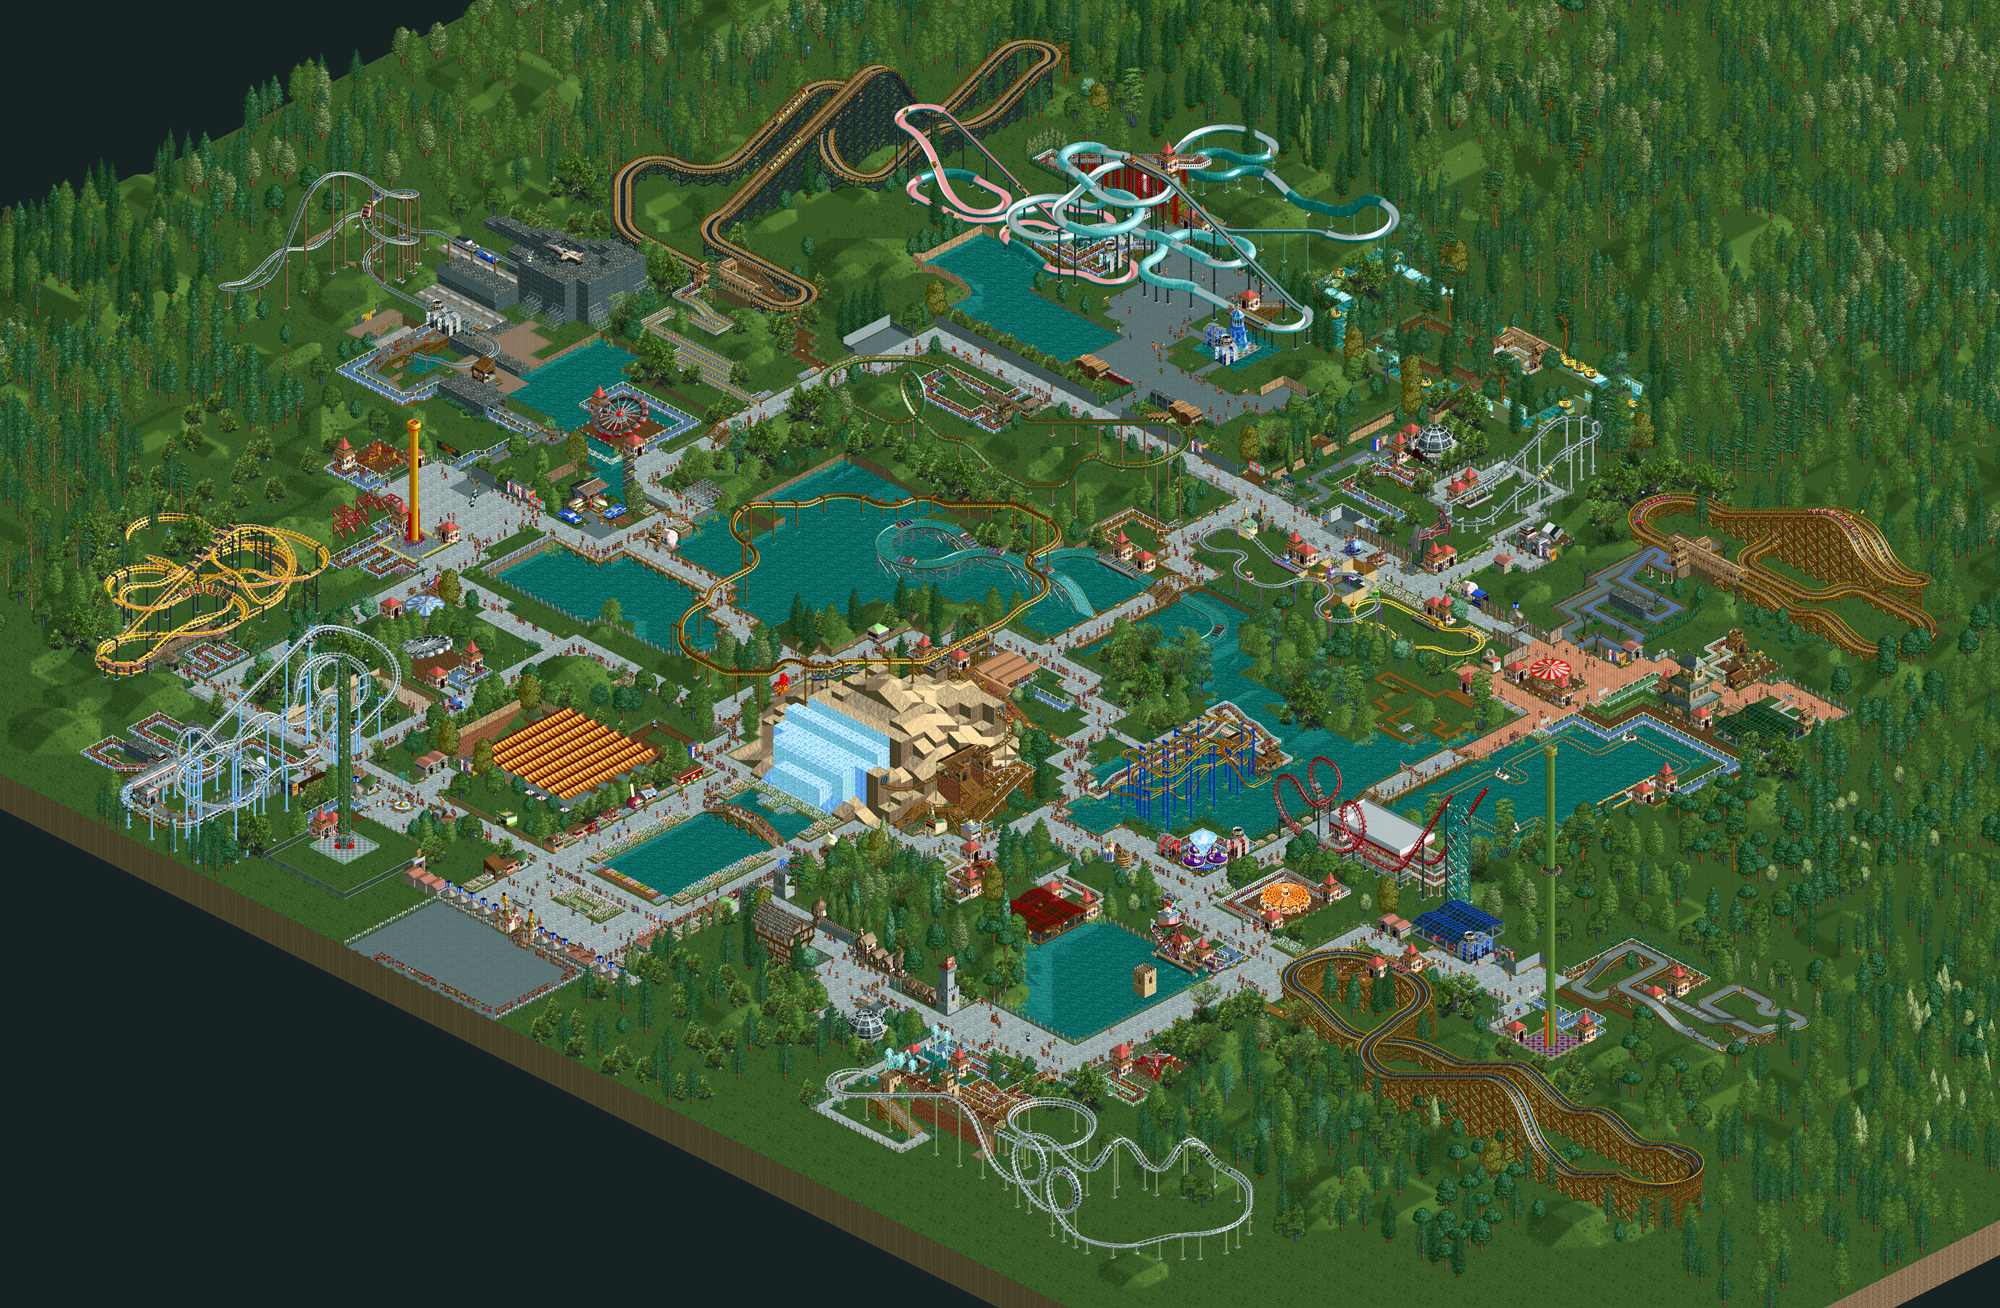 Map Of Canadas Wonderland 2017.Wonderland